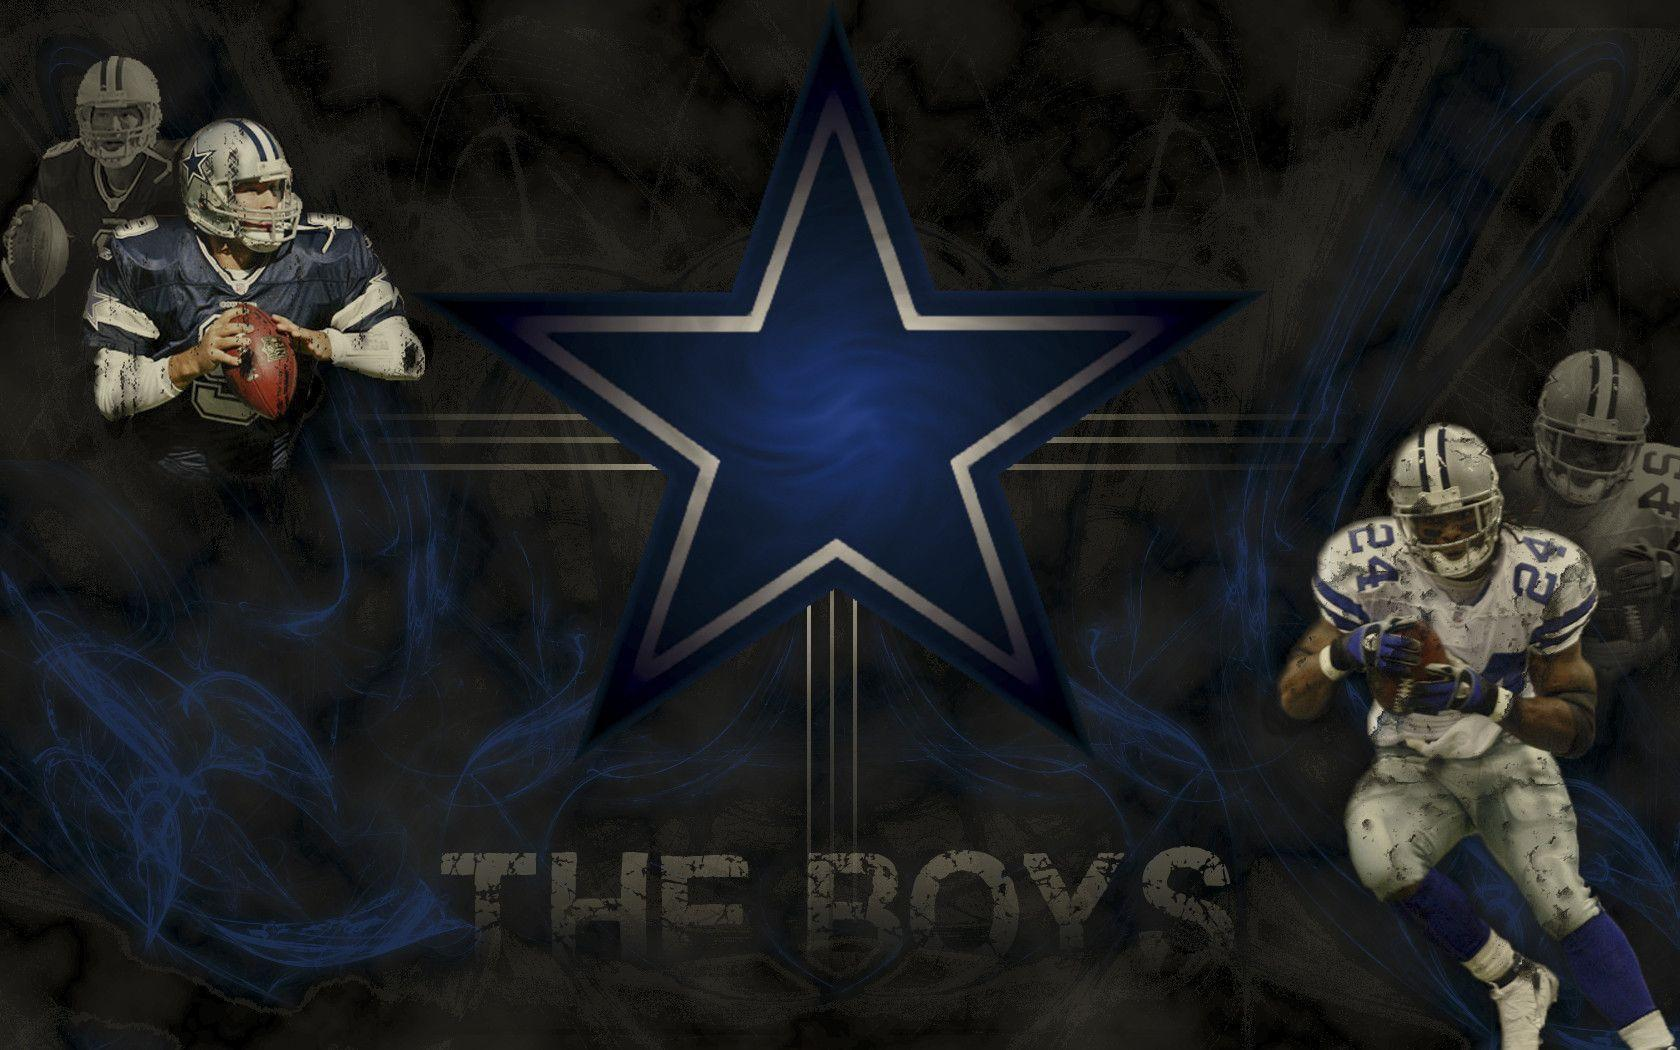 Dallas Cowboys Wallpaper For PC 29257 Hi-Resolution | Best Free JPG